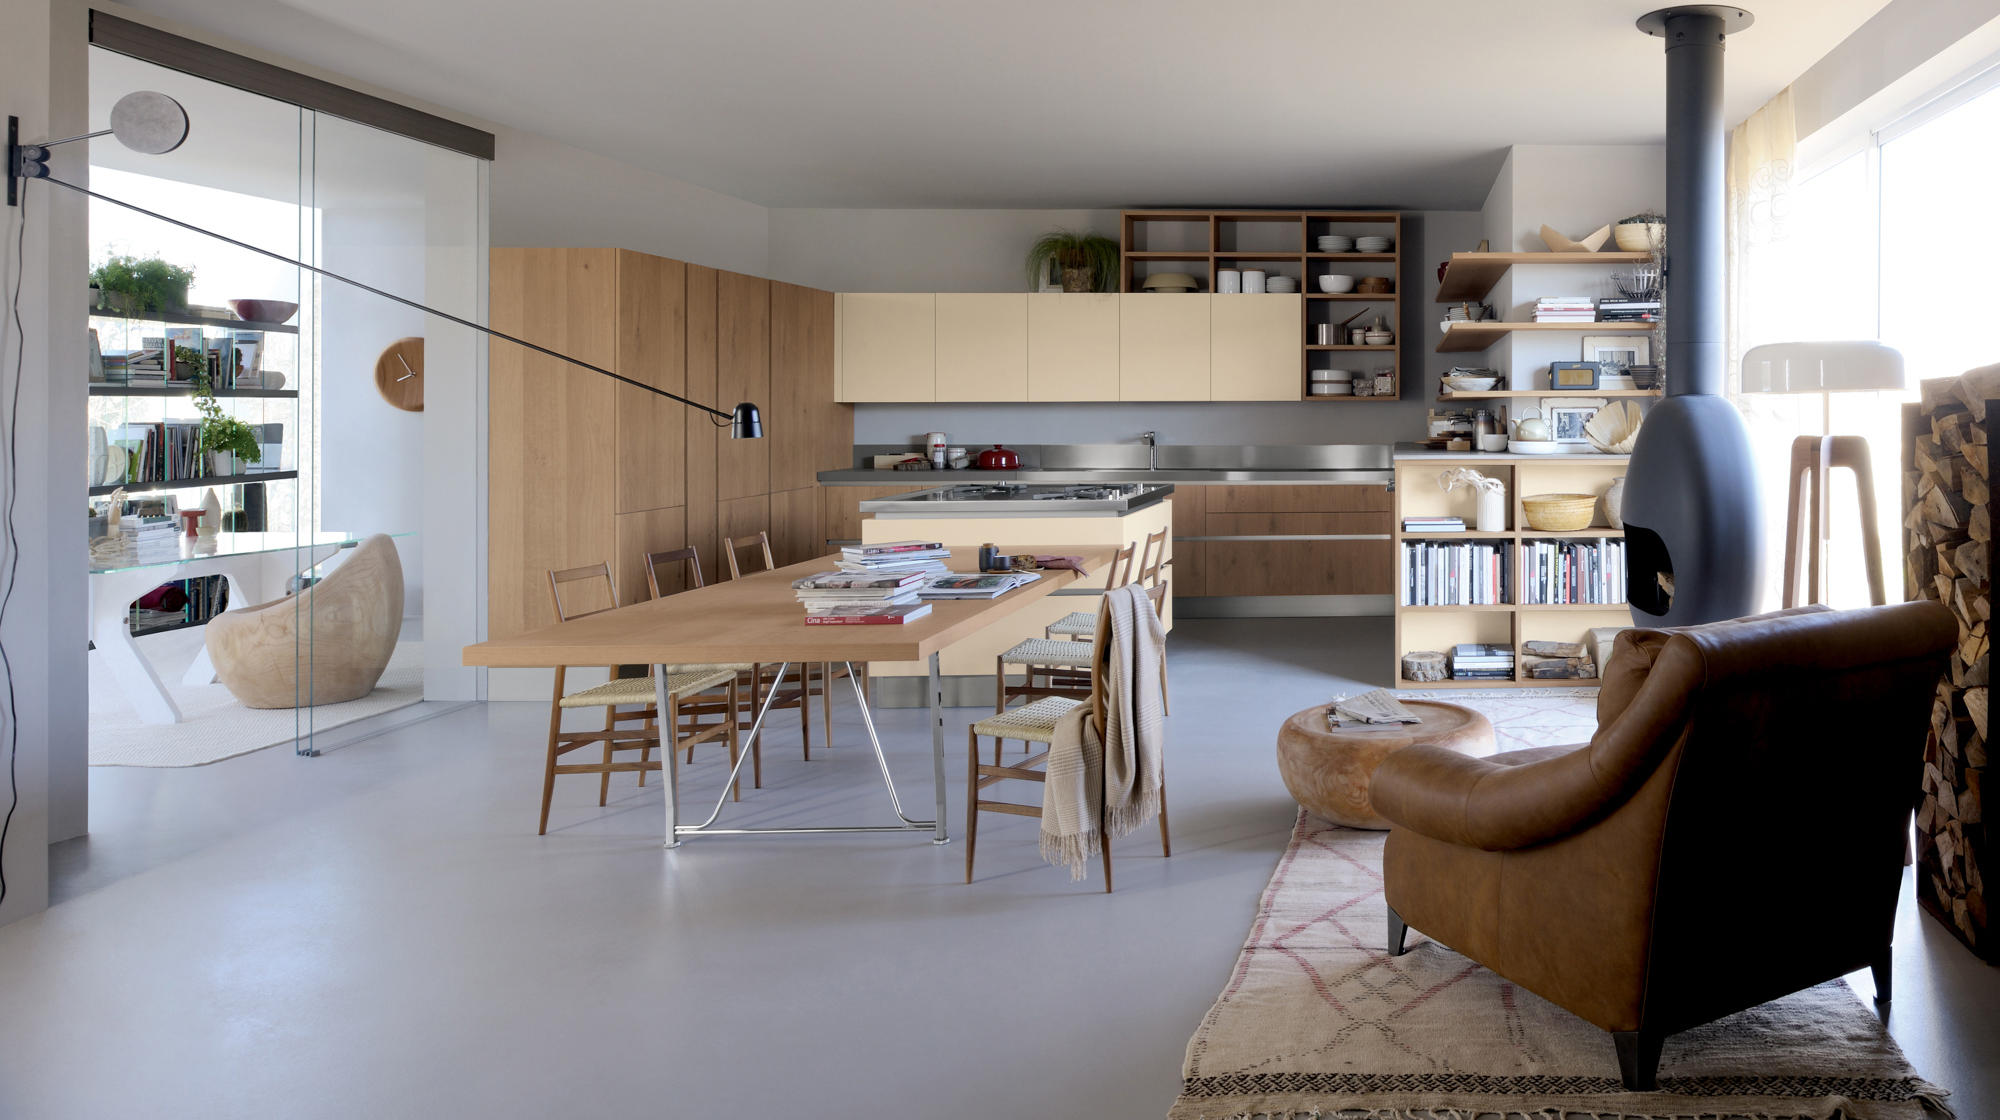 Oyster island kitchens from veneta cucine architonic for Planner cucina